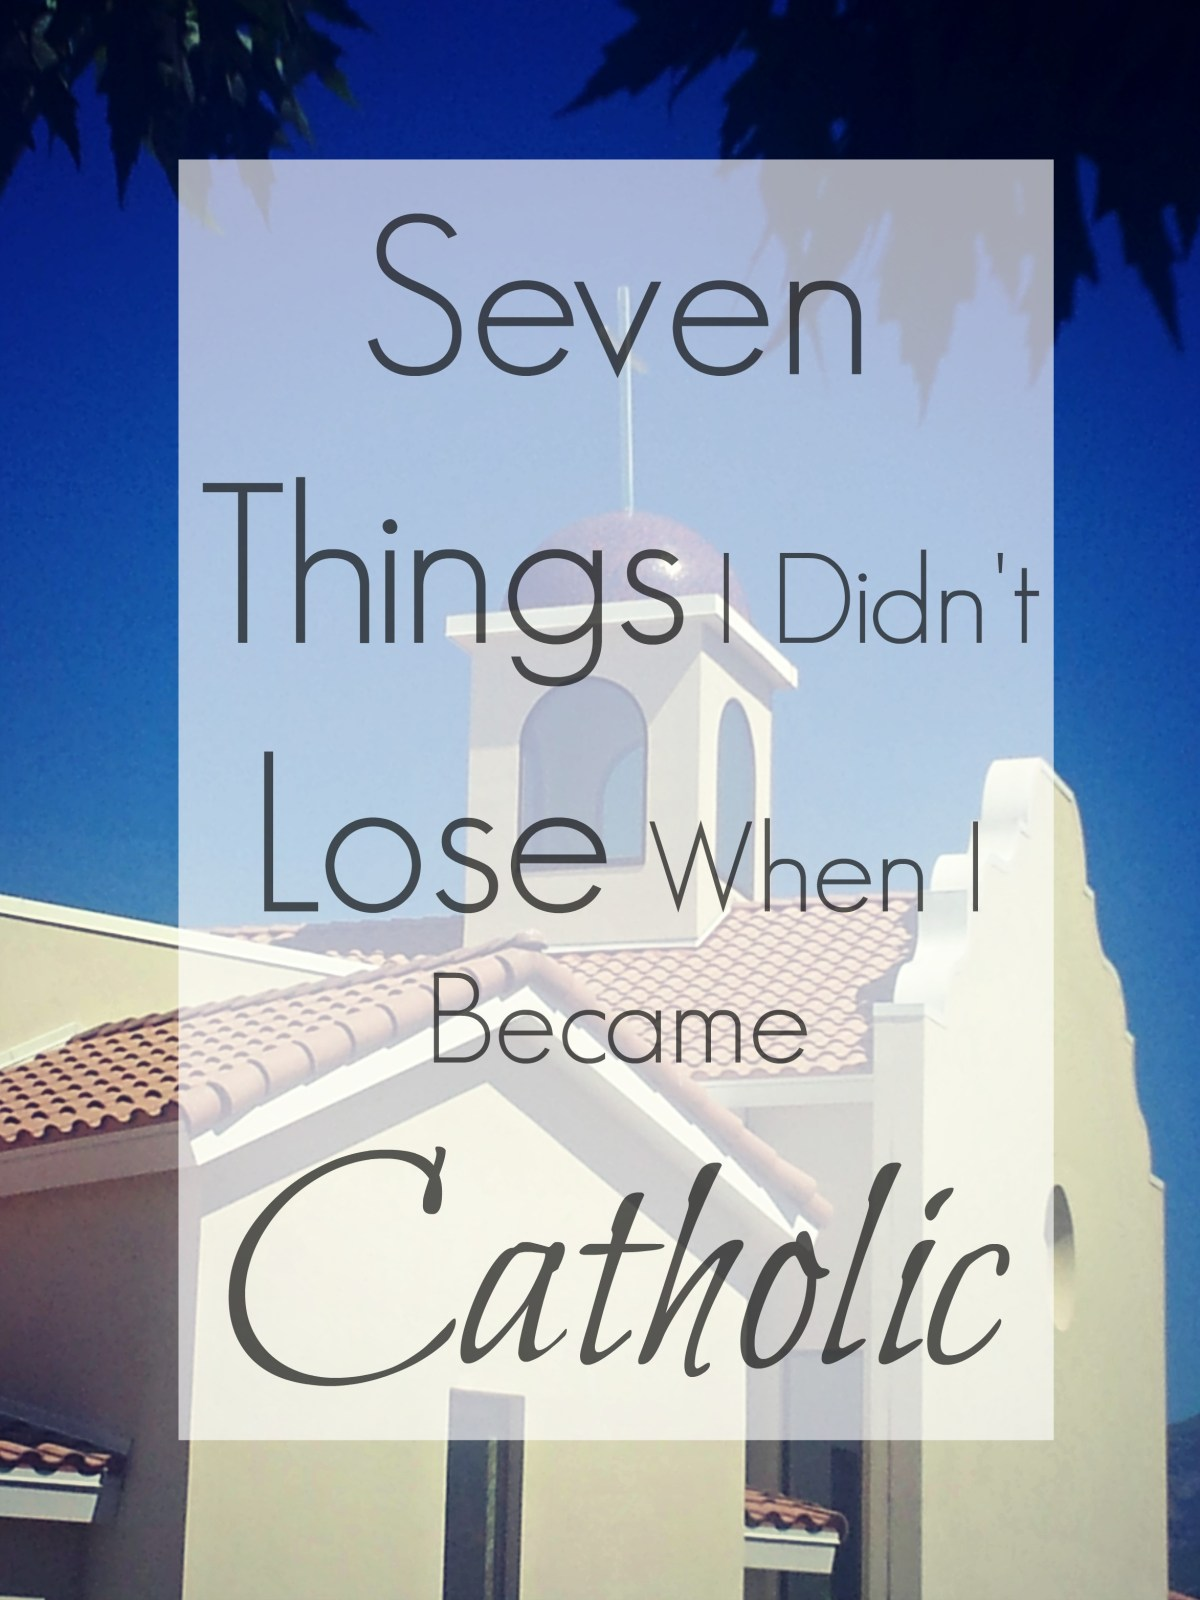 7 Things I Didn't Lose When I Became Catholic